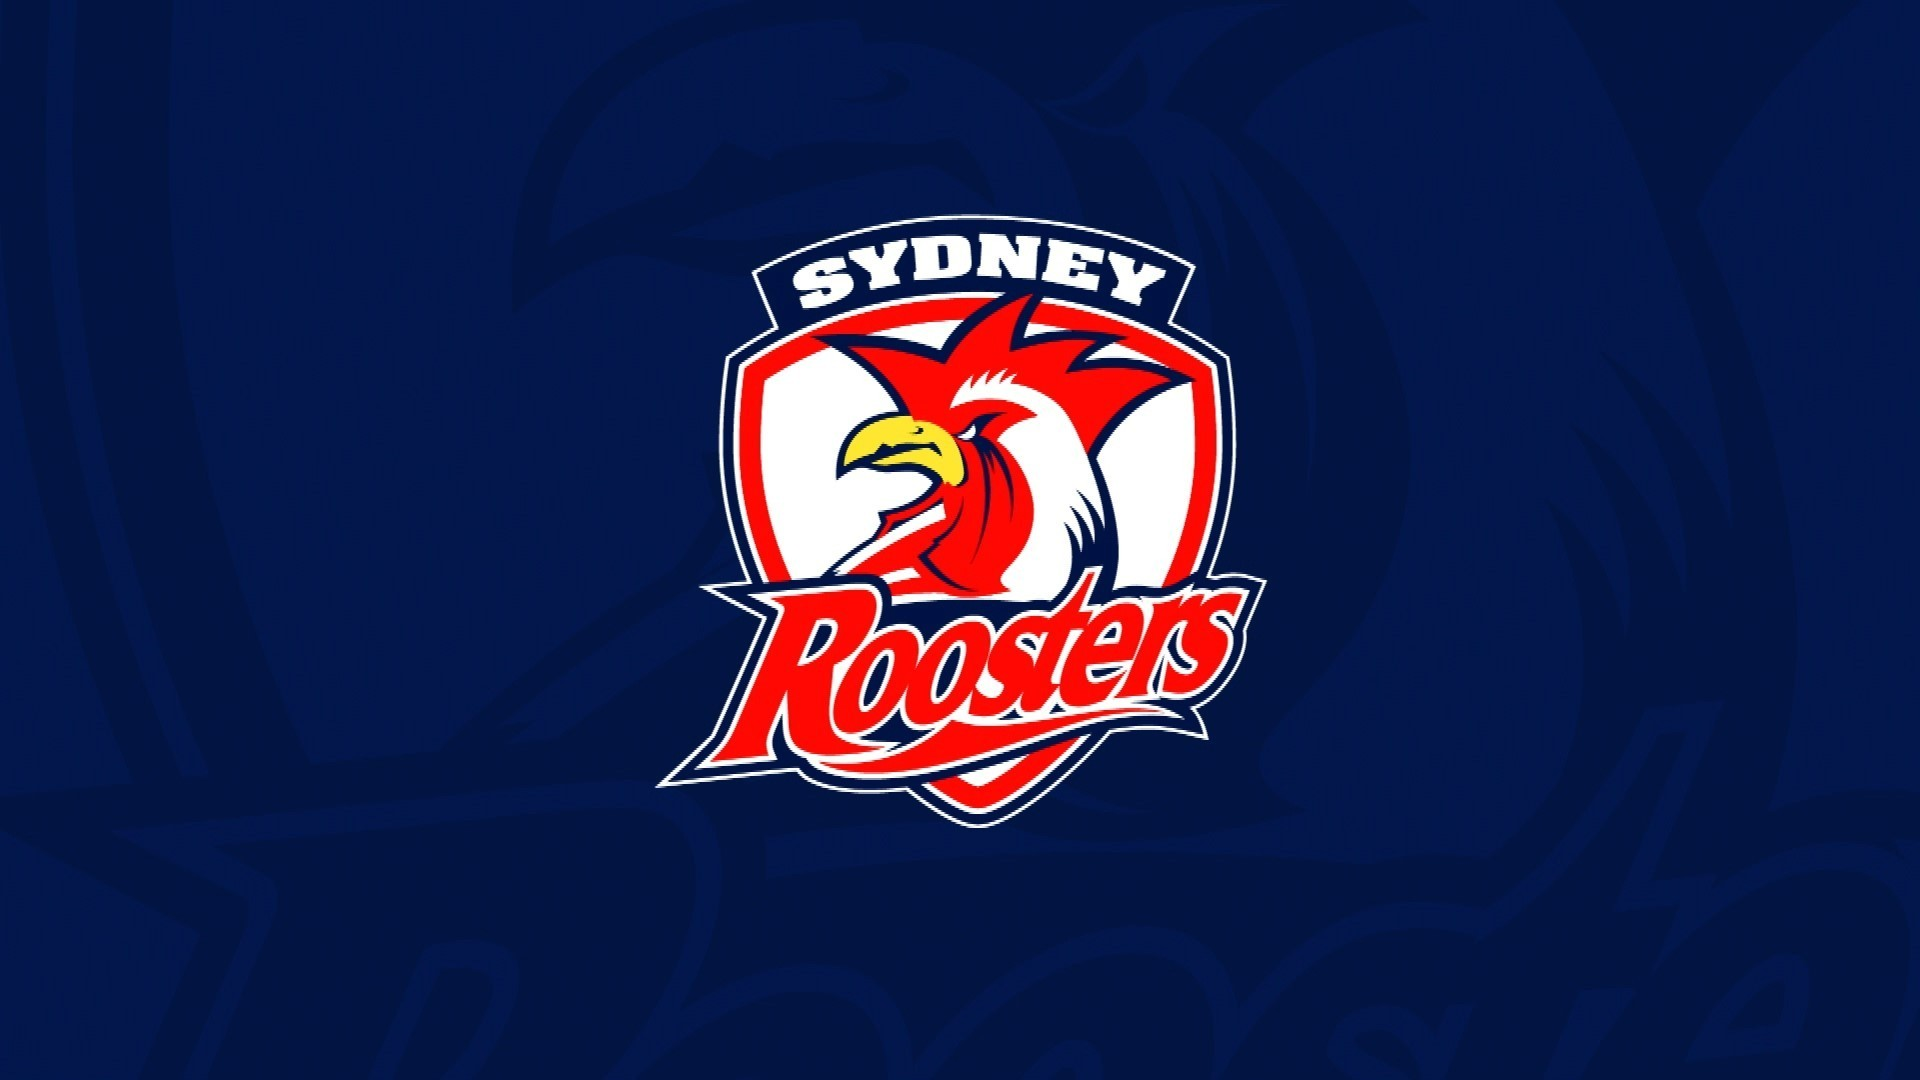 Sydney Roosters Wallpaper